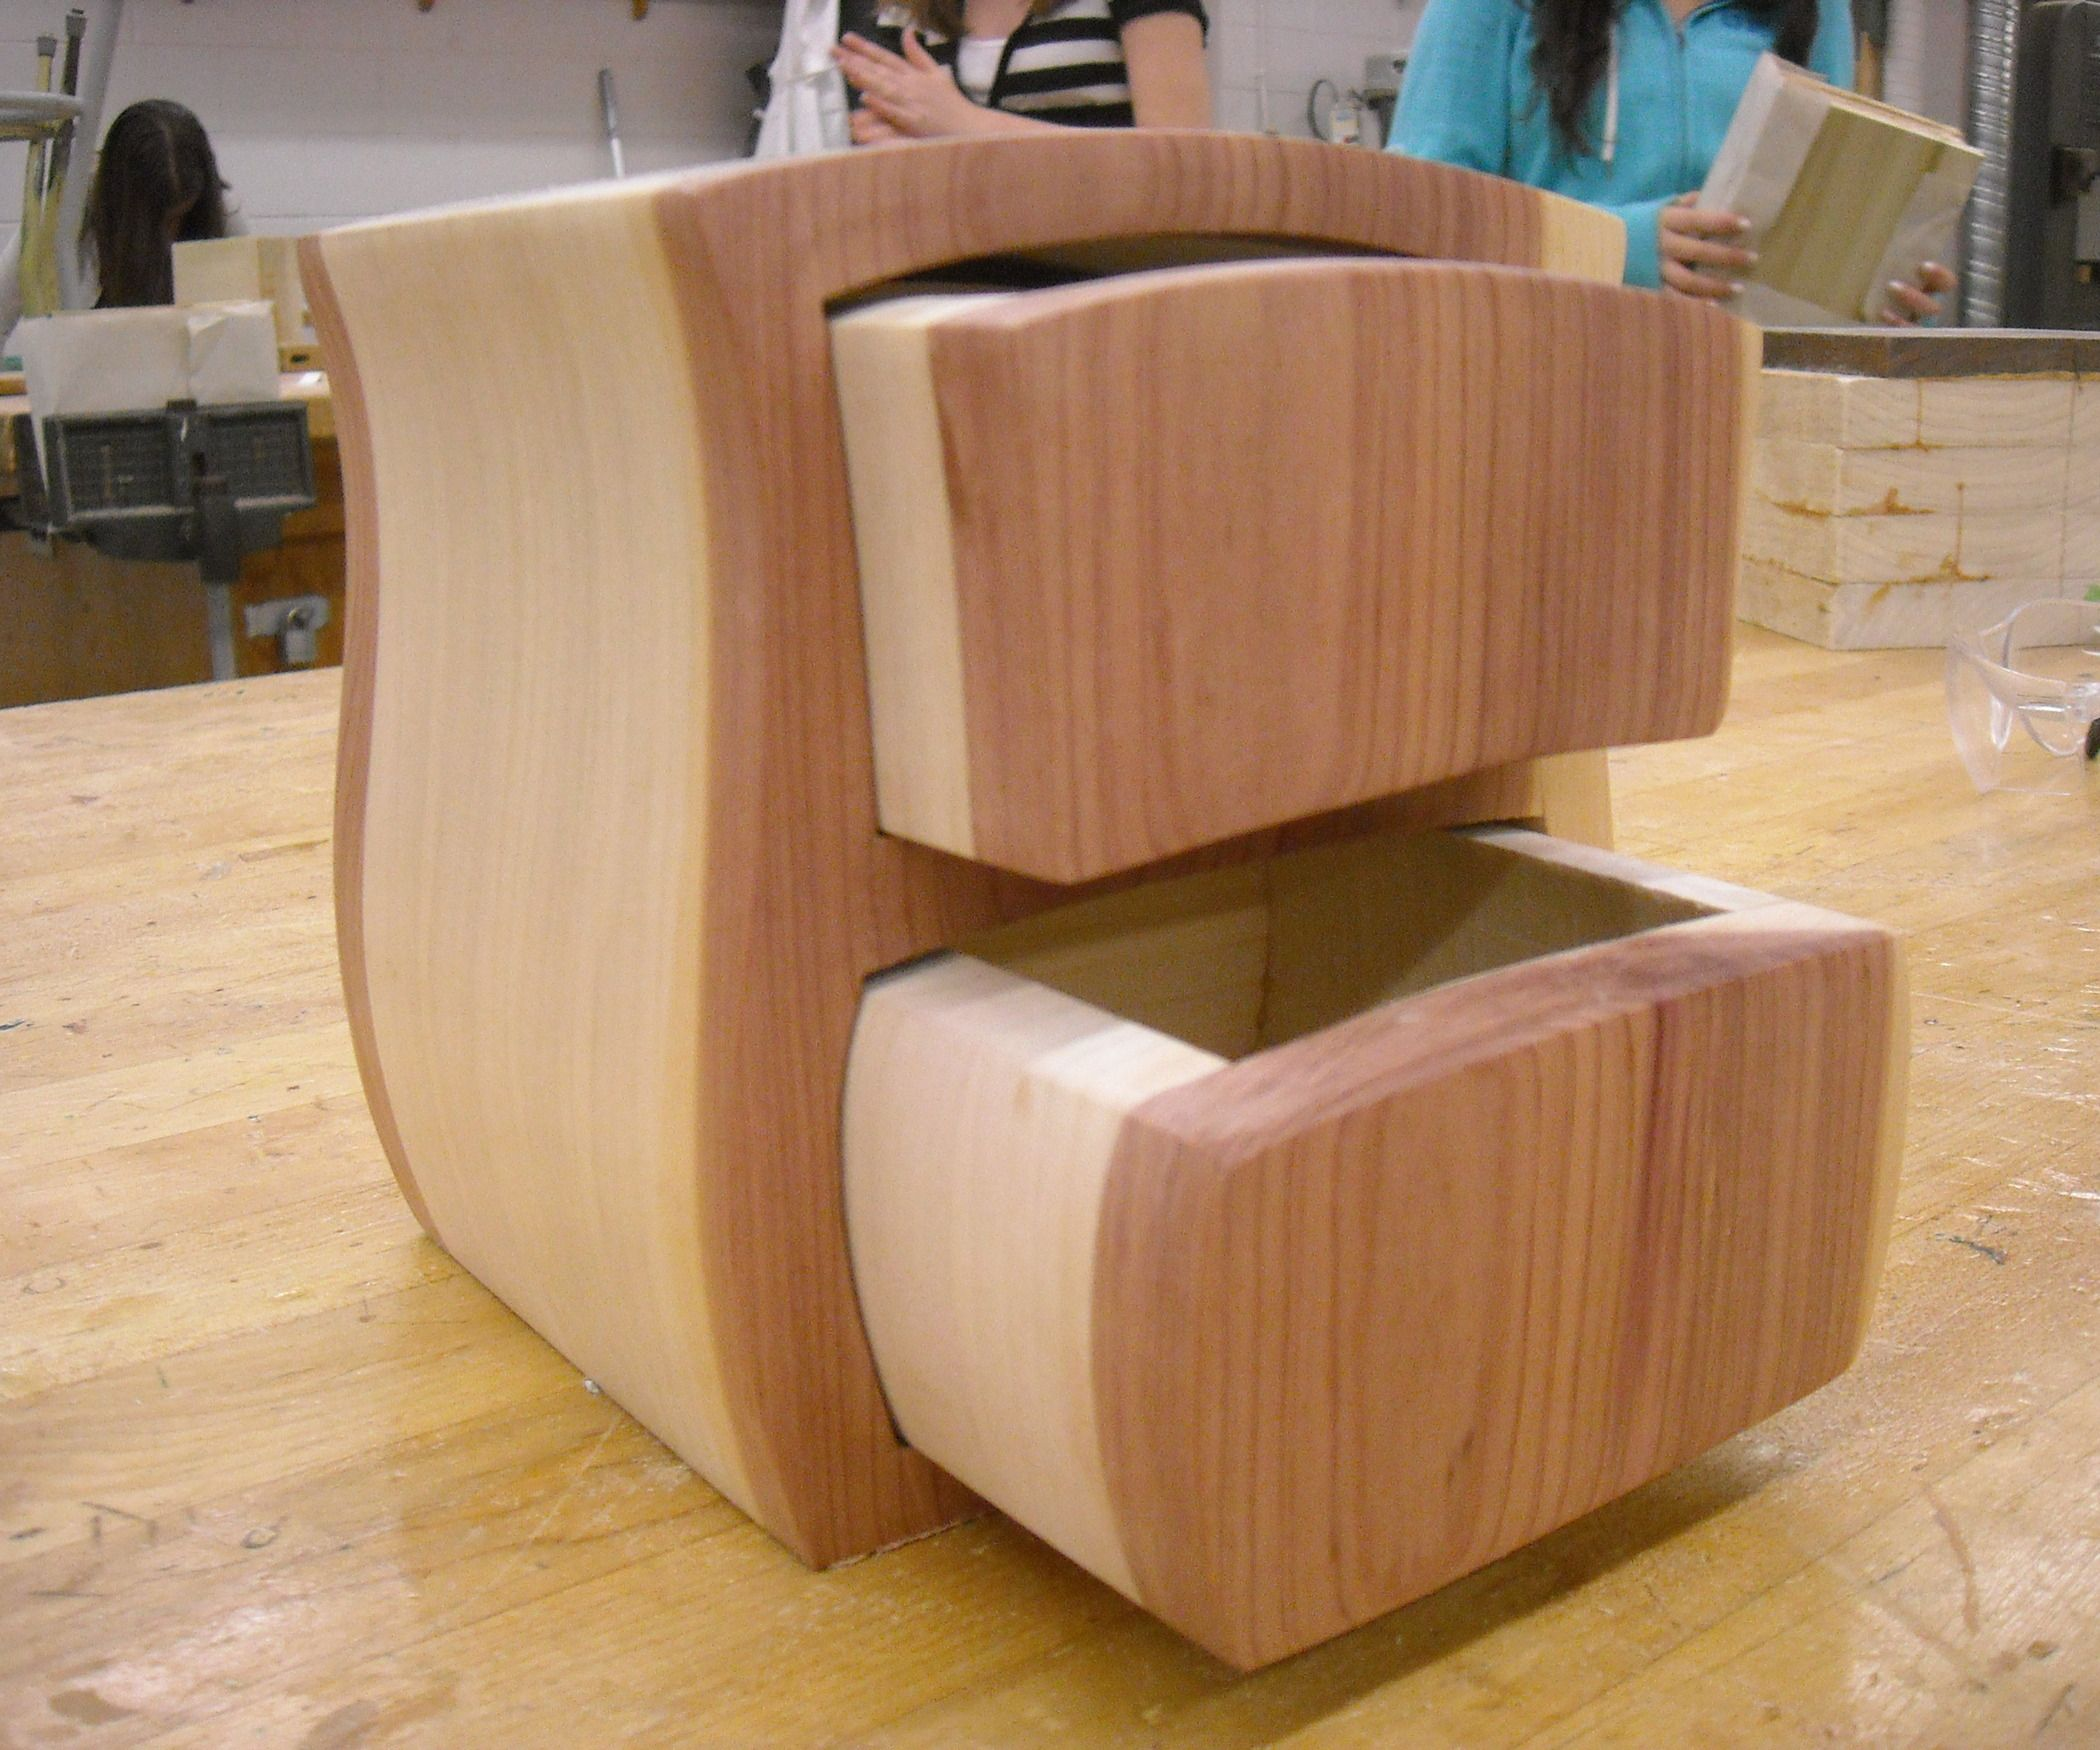 A Bandsaw Box Kids Can Make Woodworking Pinterest Woodworking